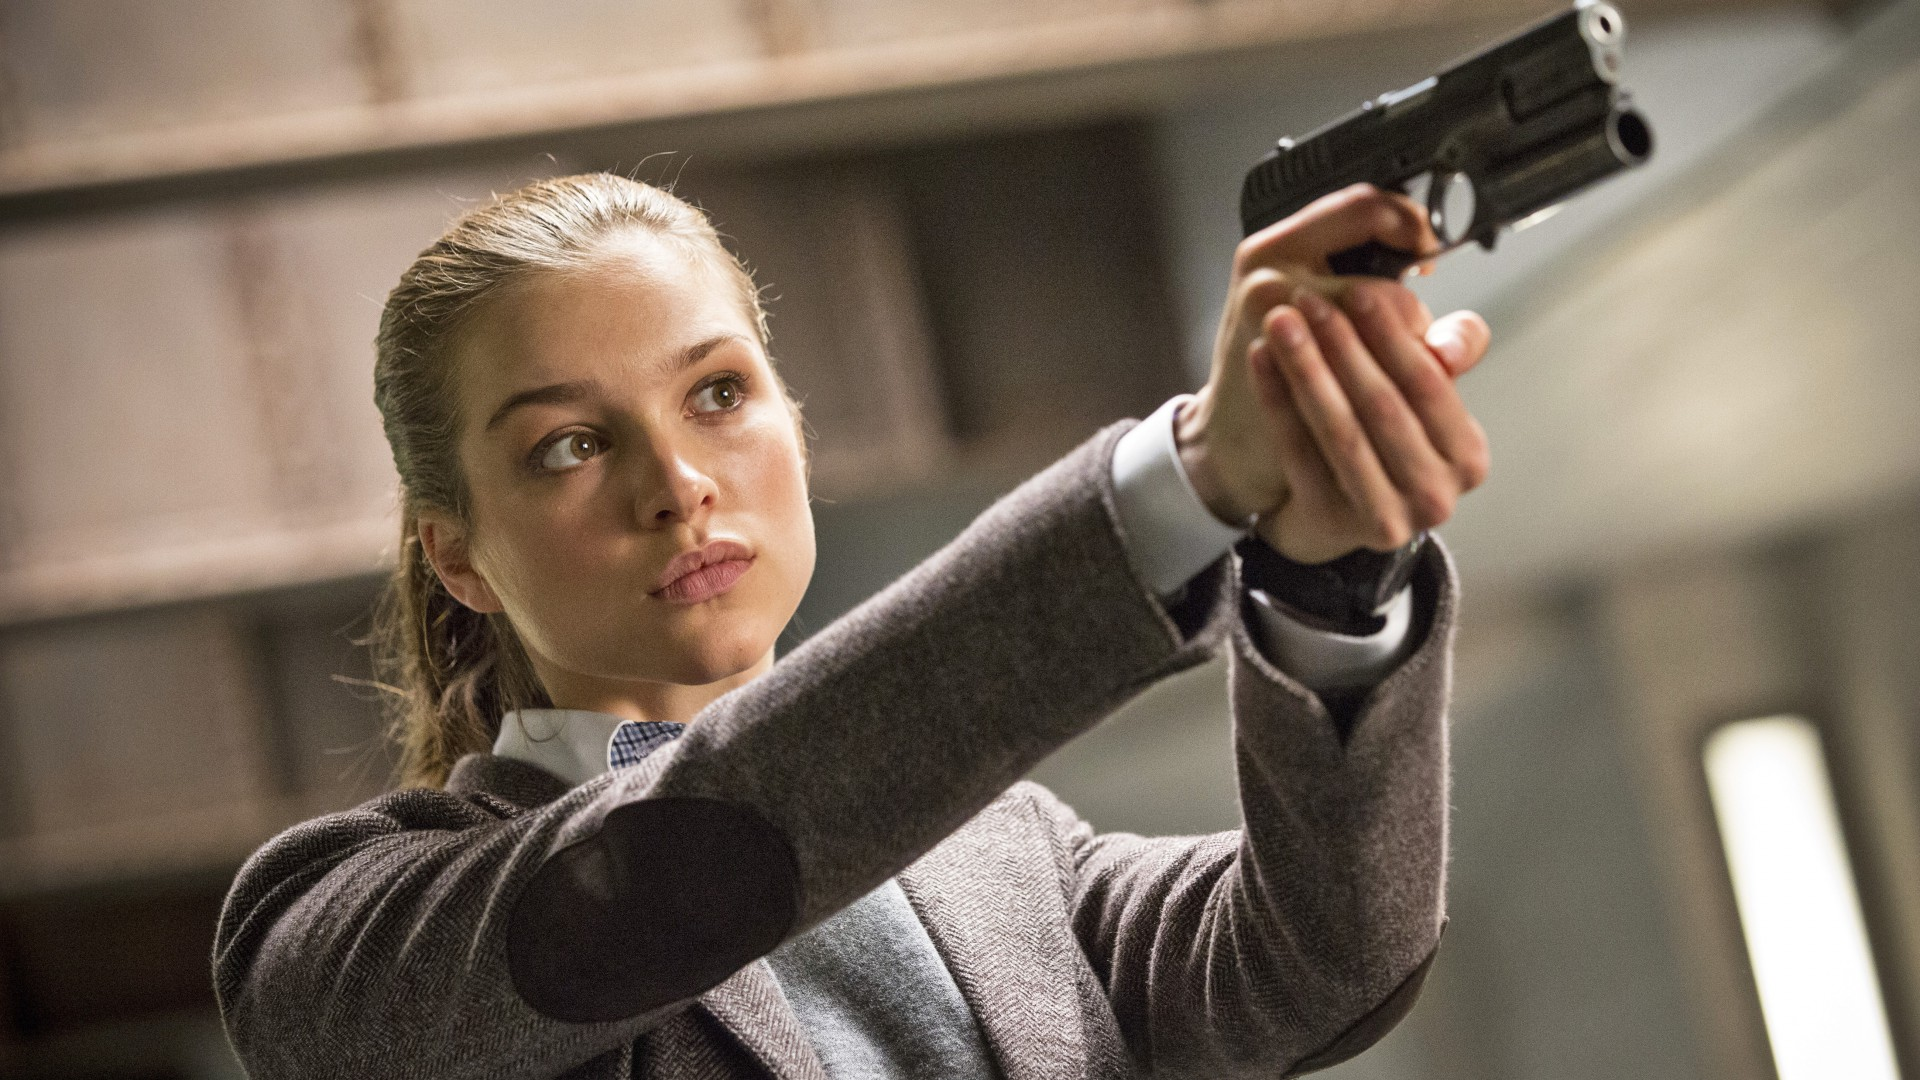 Sophie Cookson, Kingsman, Most Popular Celebs in 2015, Best Movies of 2015, actress (horizontal)